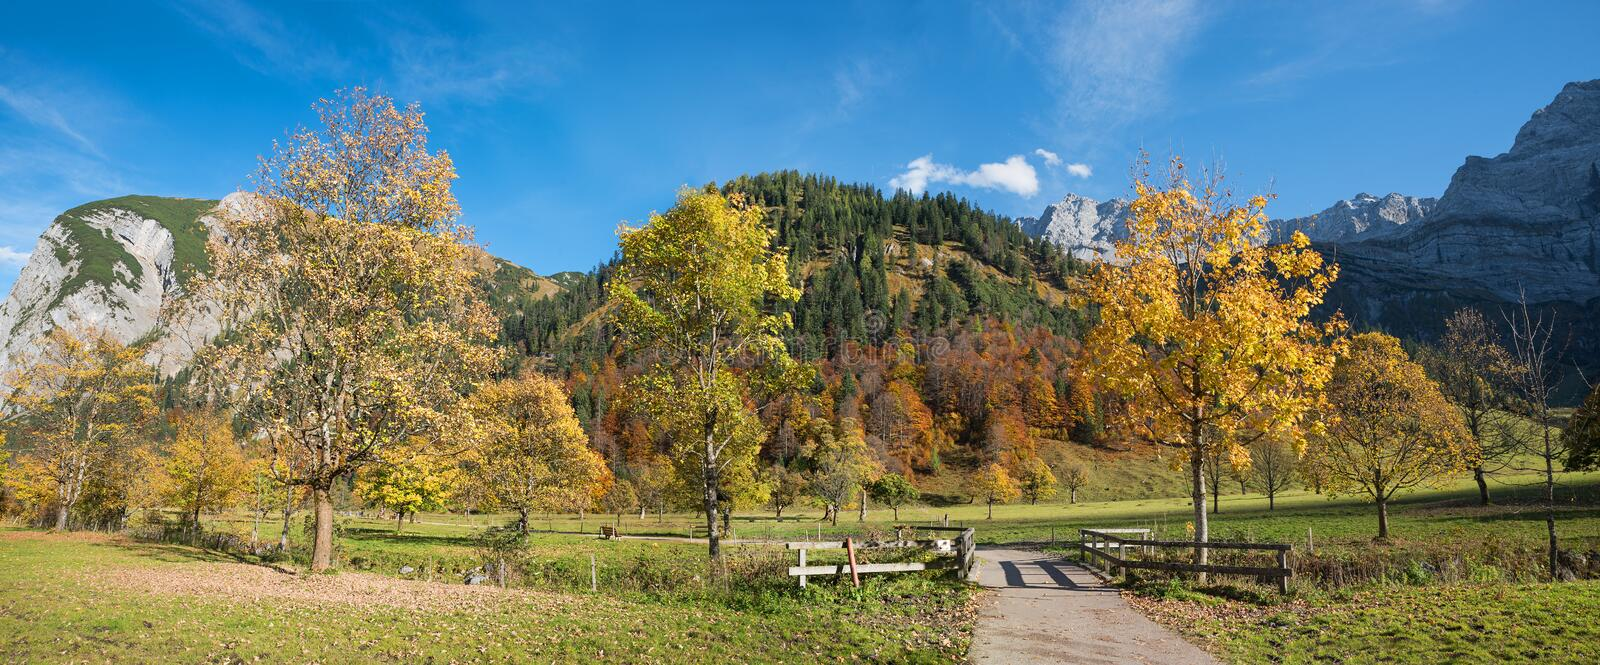 Beautiful autumn landscape, hiking area karwendel valley, named stock photos